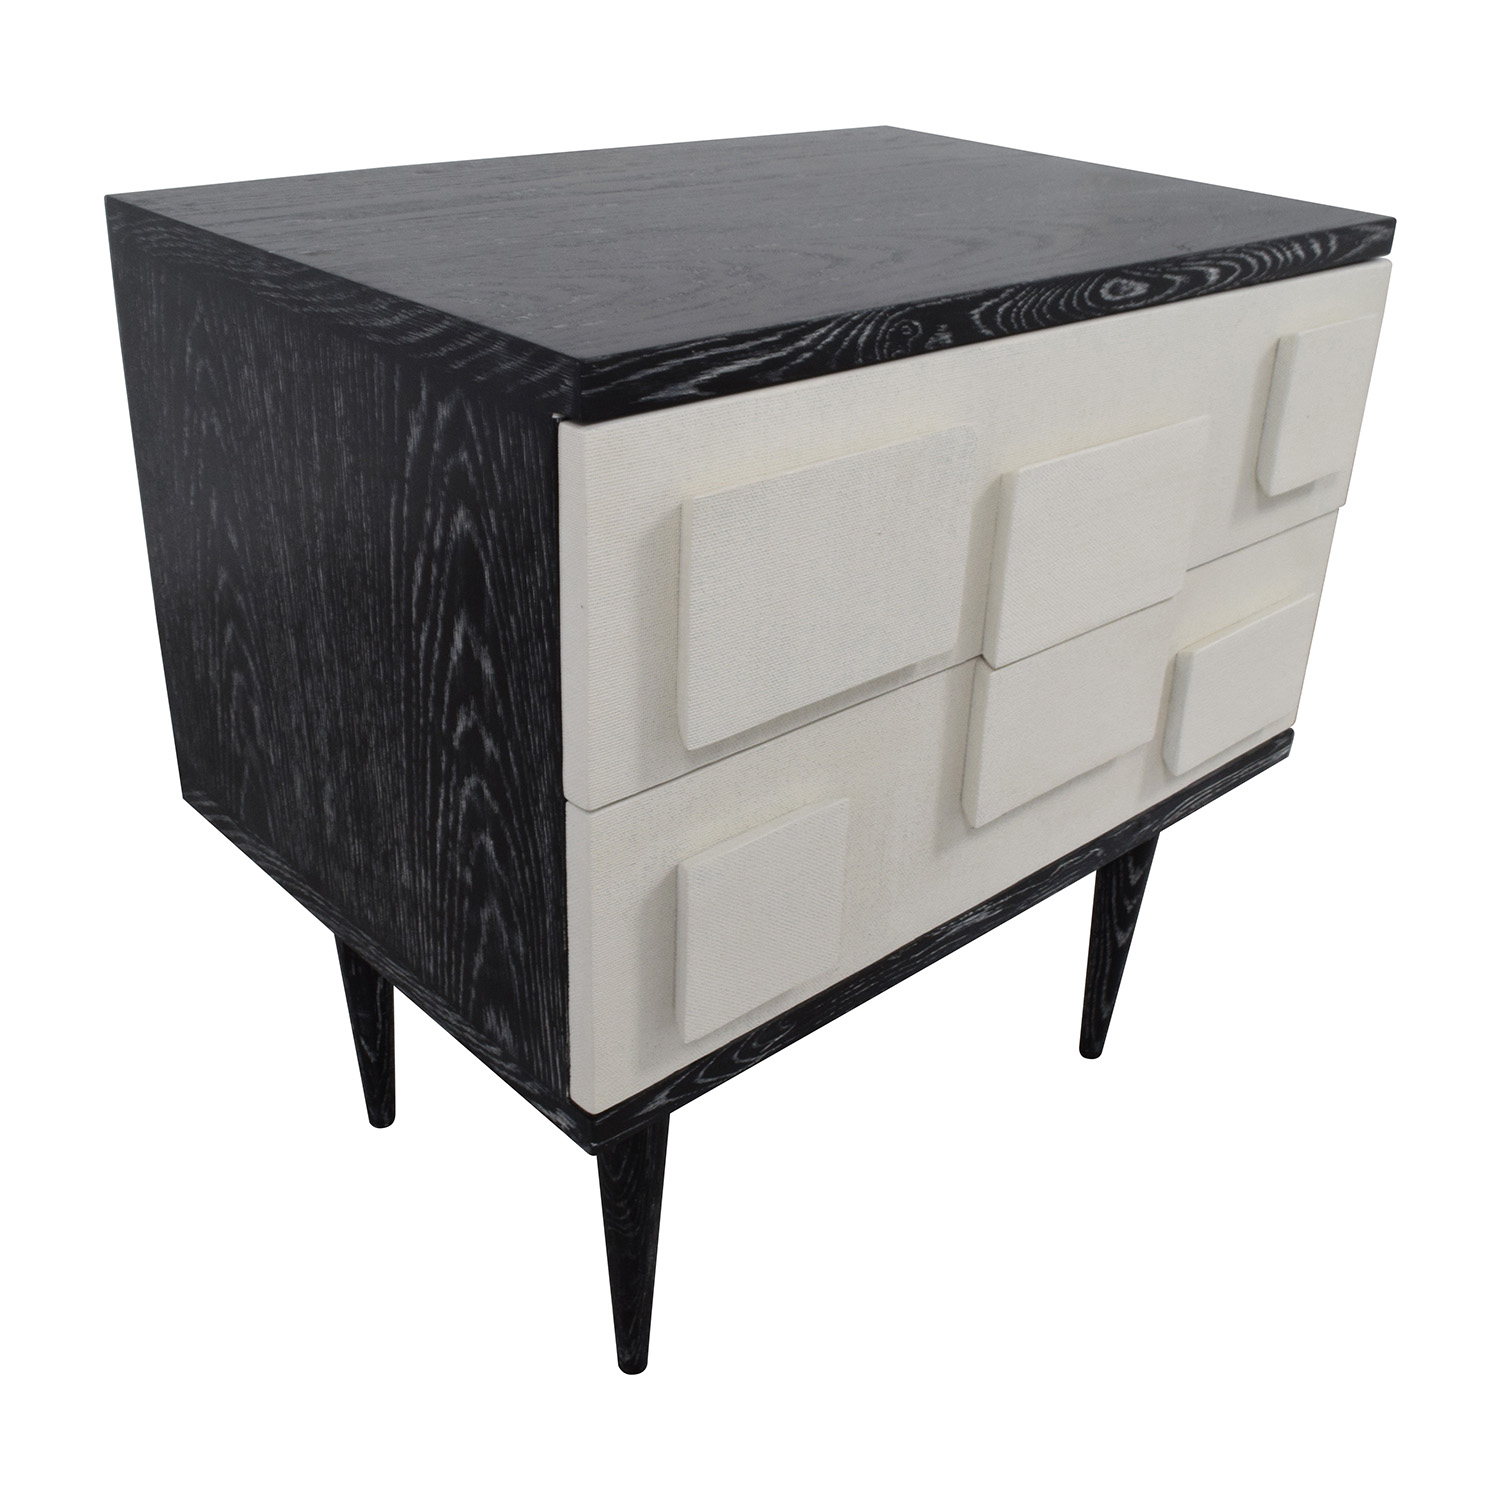 Bungalow 5 Bungalow 5 Ponti Two-Drawer Side Table price